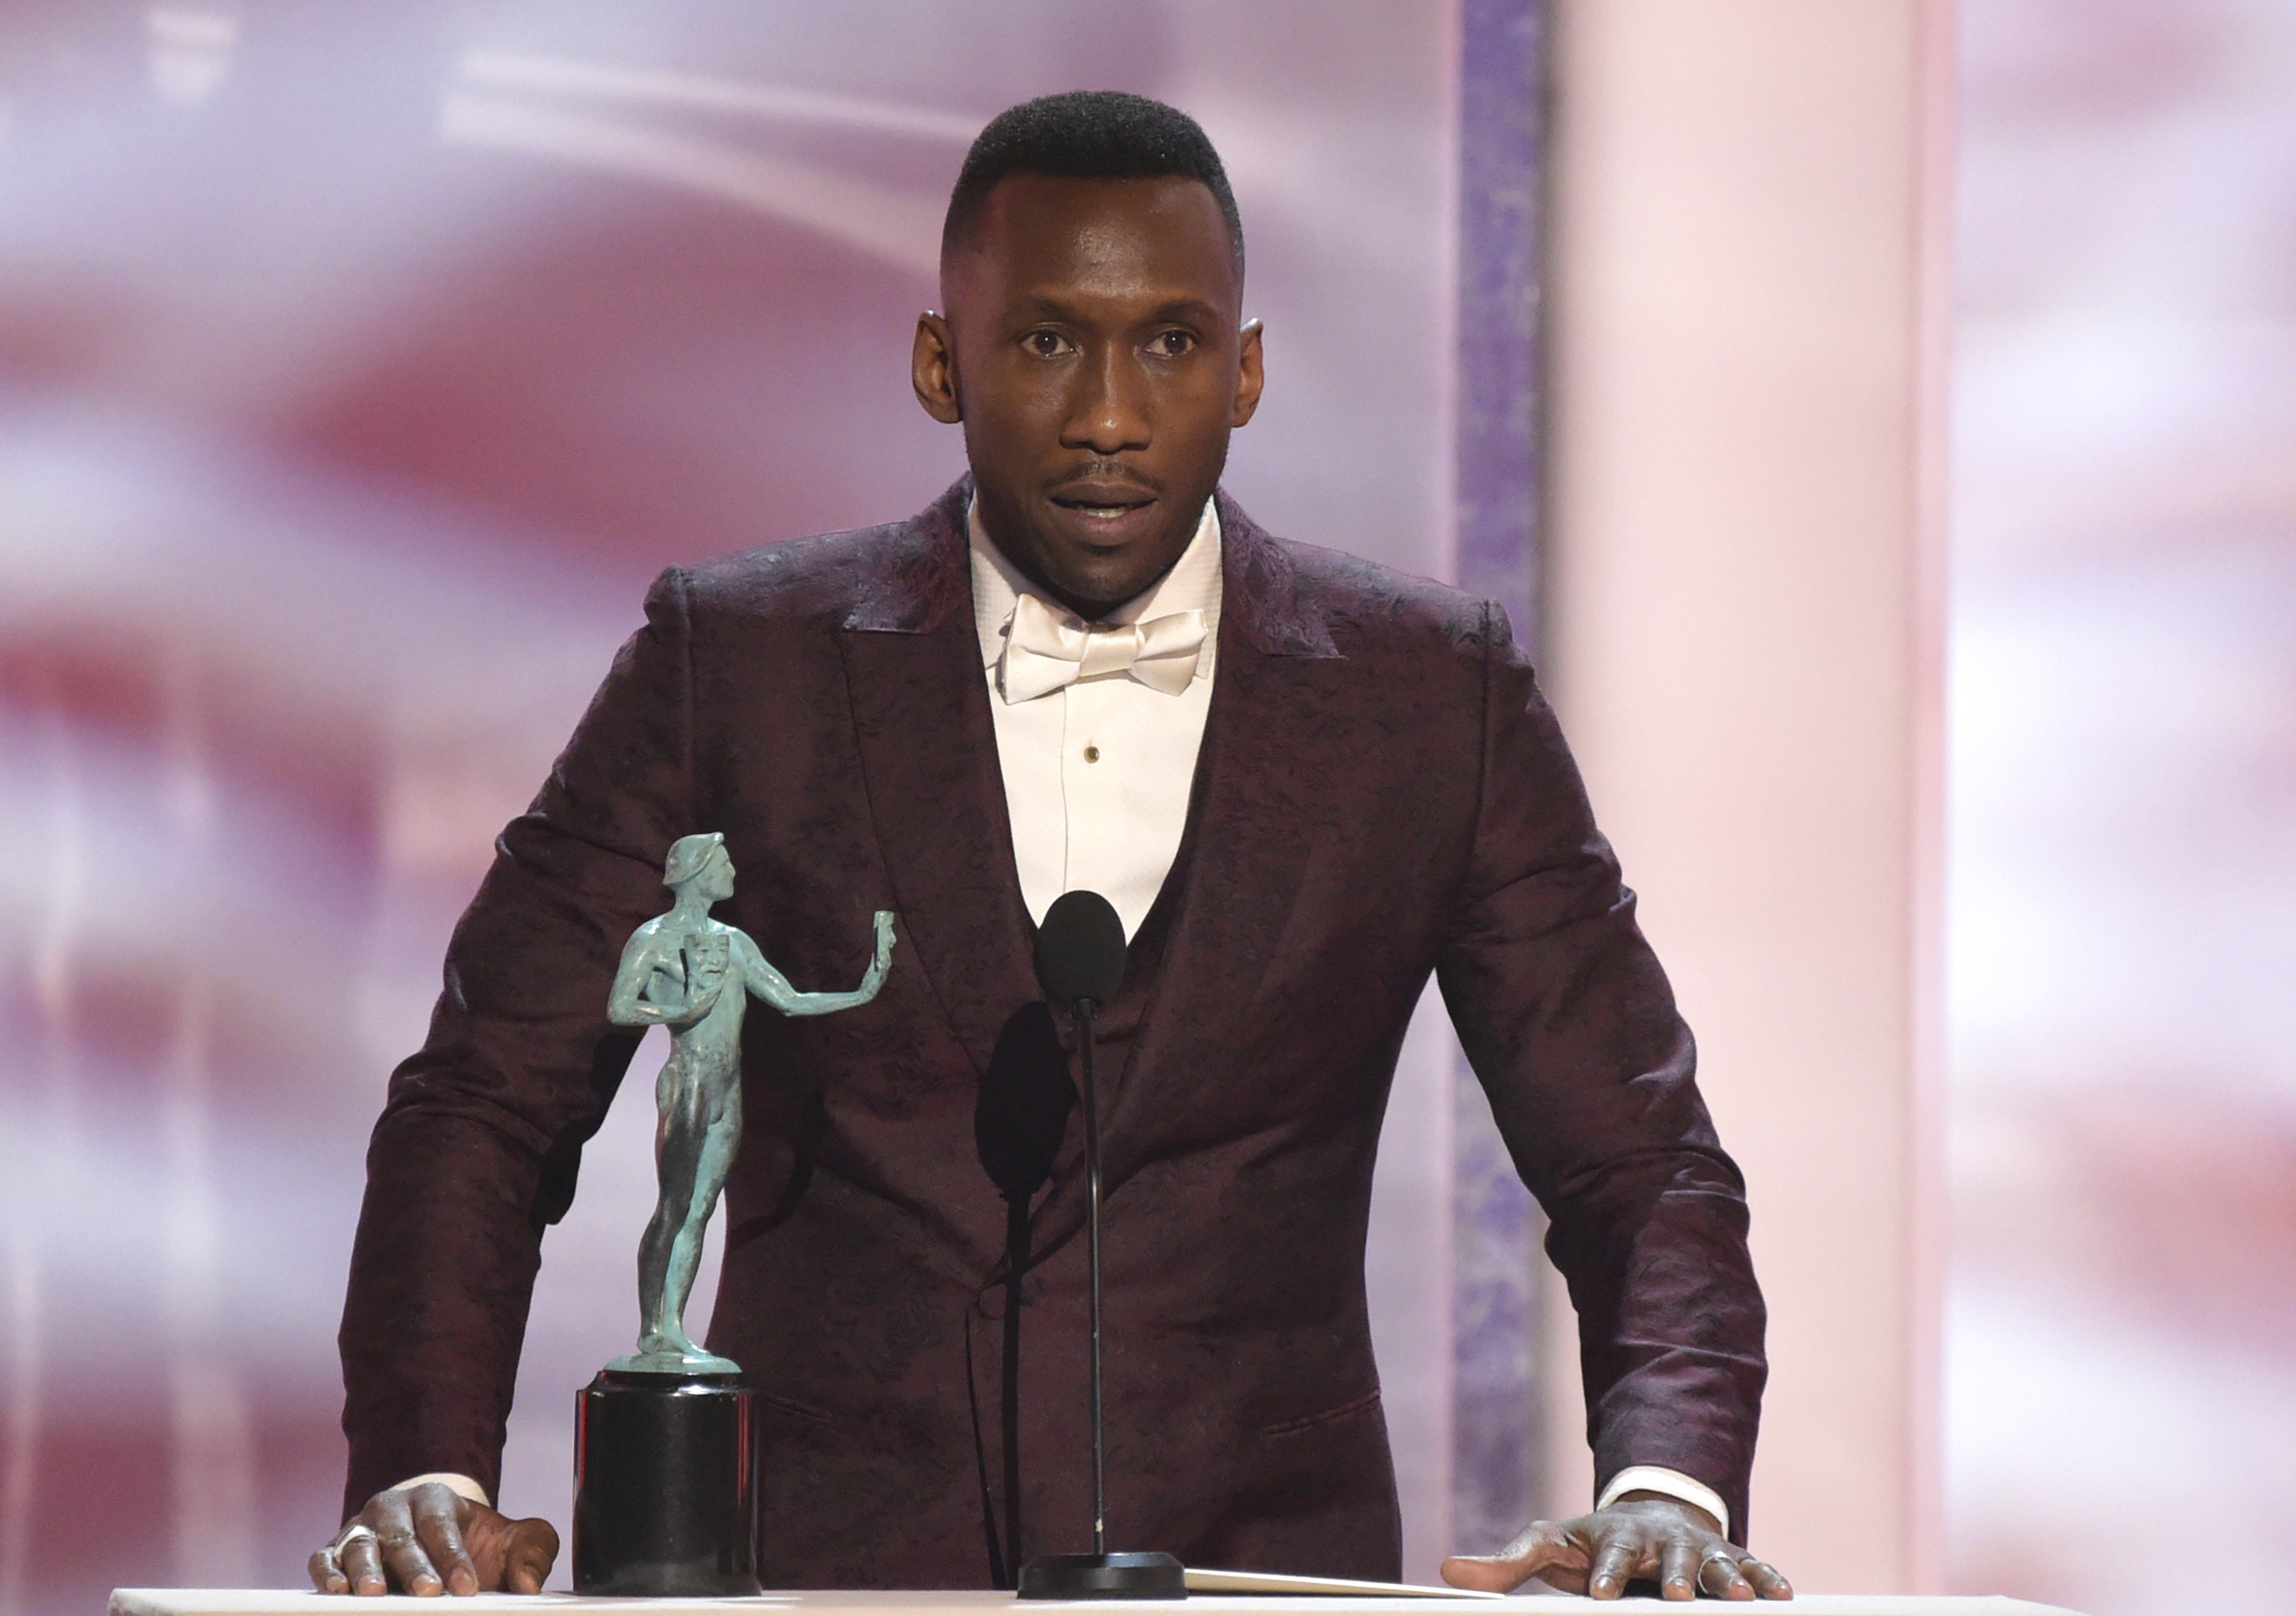 Mahershala Ali accepts the award for outstanding performance by a male actor in a supporting role for